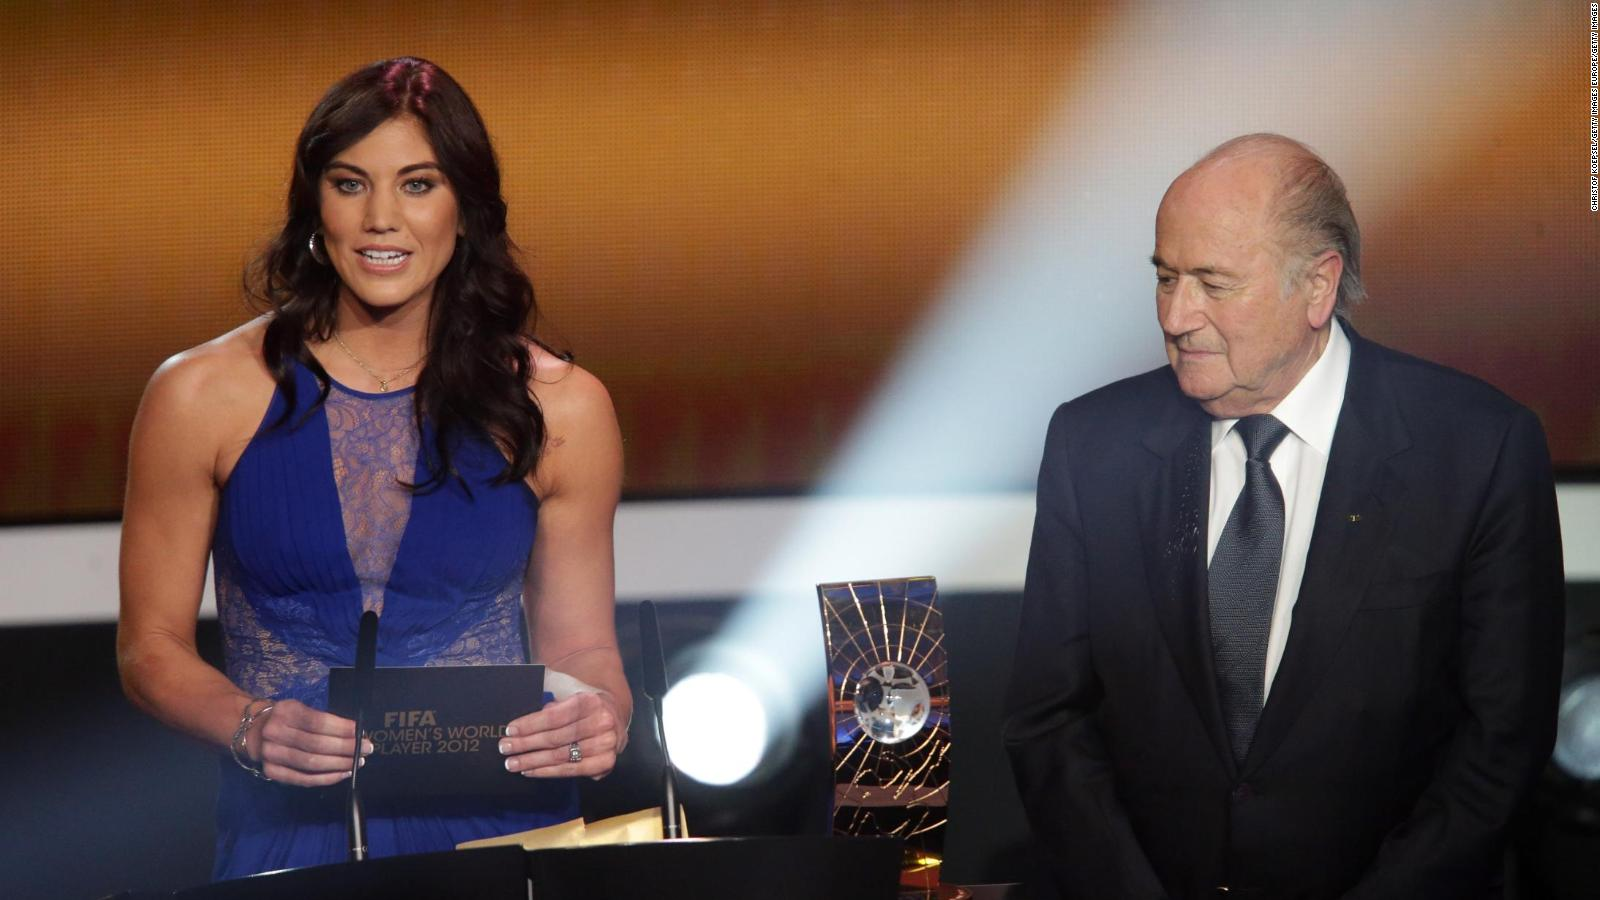 Soccer star Hope Solo says ex-FIFA chief grabbed her inappropriately